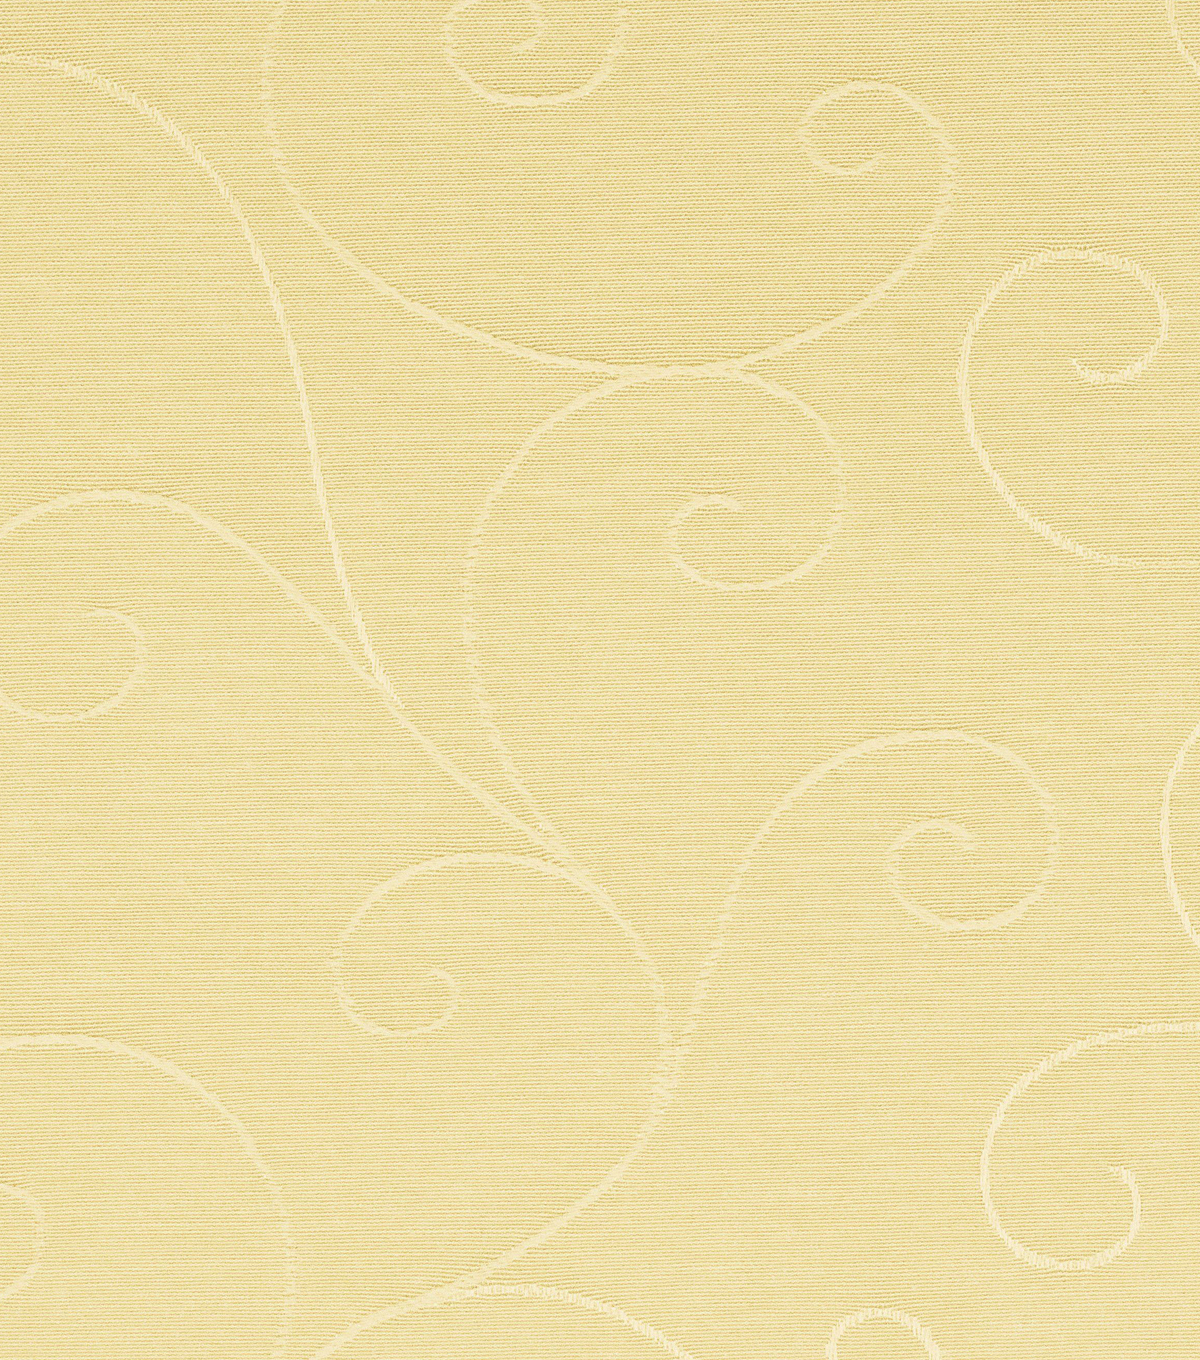 Home Decor 8\u0022x8\u0022 Fabric Swatch-Crestmont Tempest-Oyster